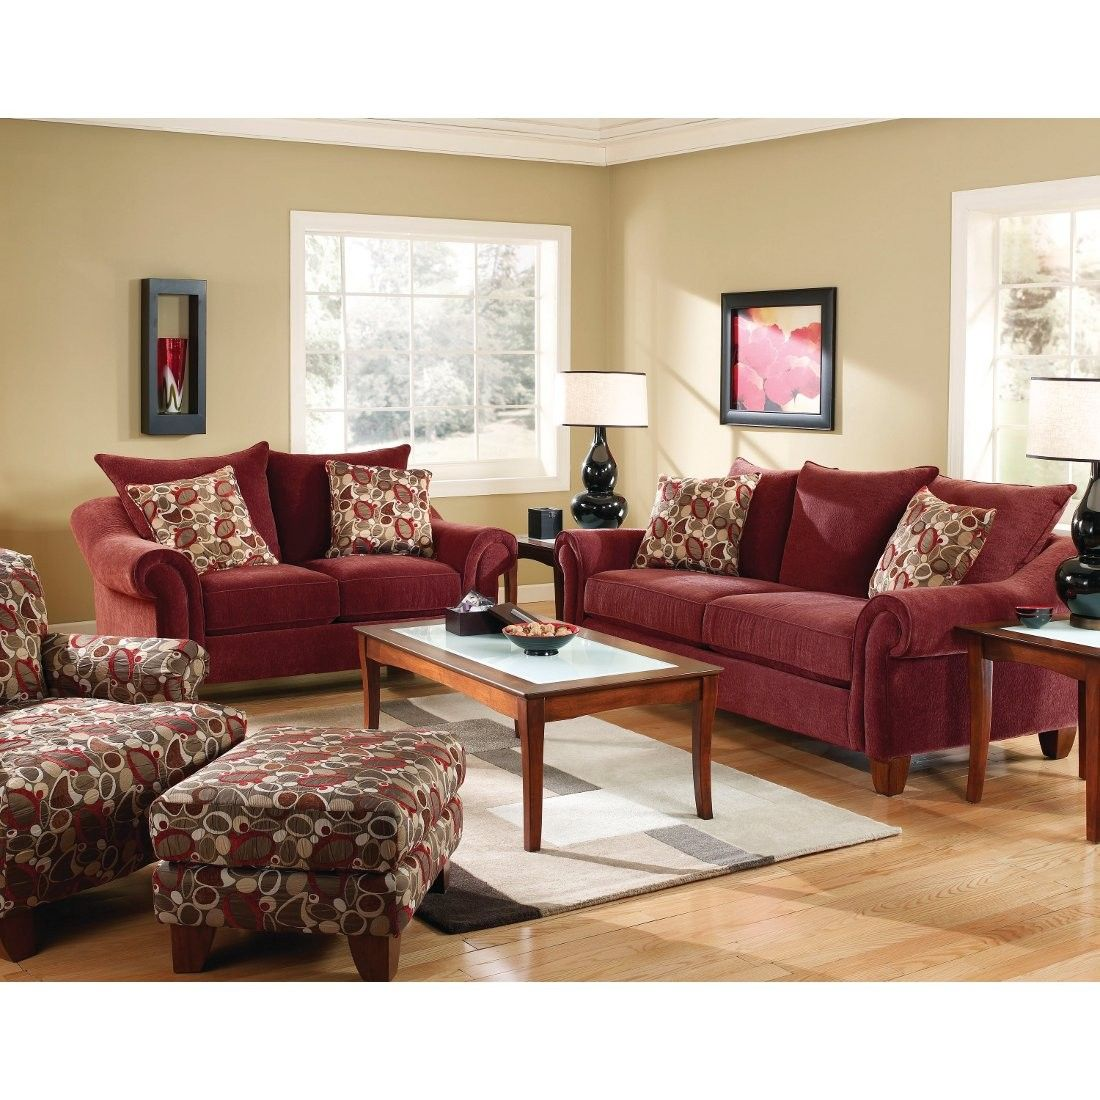 Living Room Sets At Conns corinthian cebu sofa | wine (2833s) | conn's home plus - $699.00